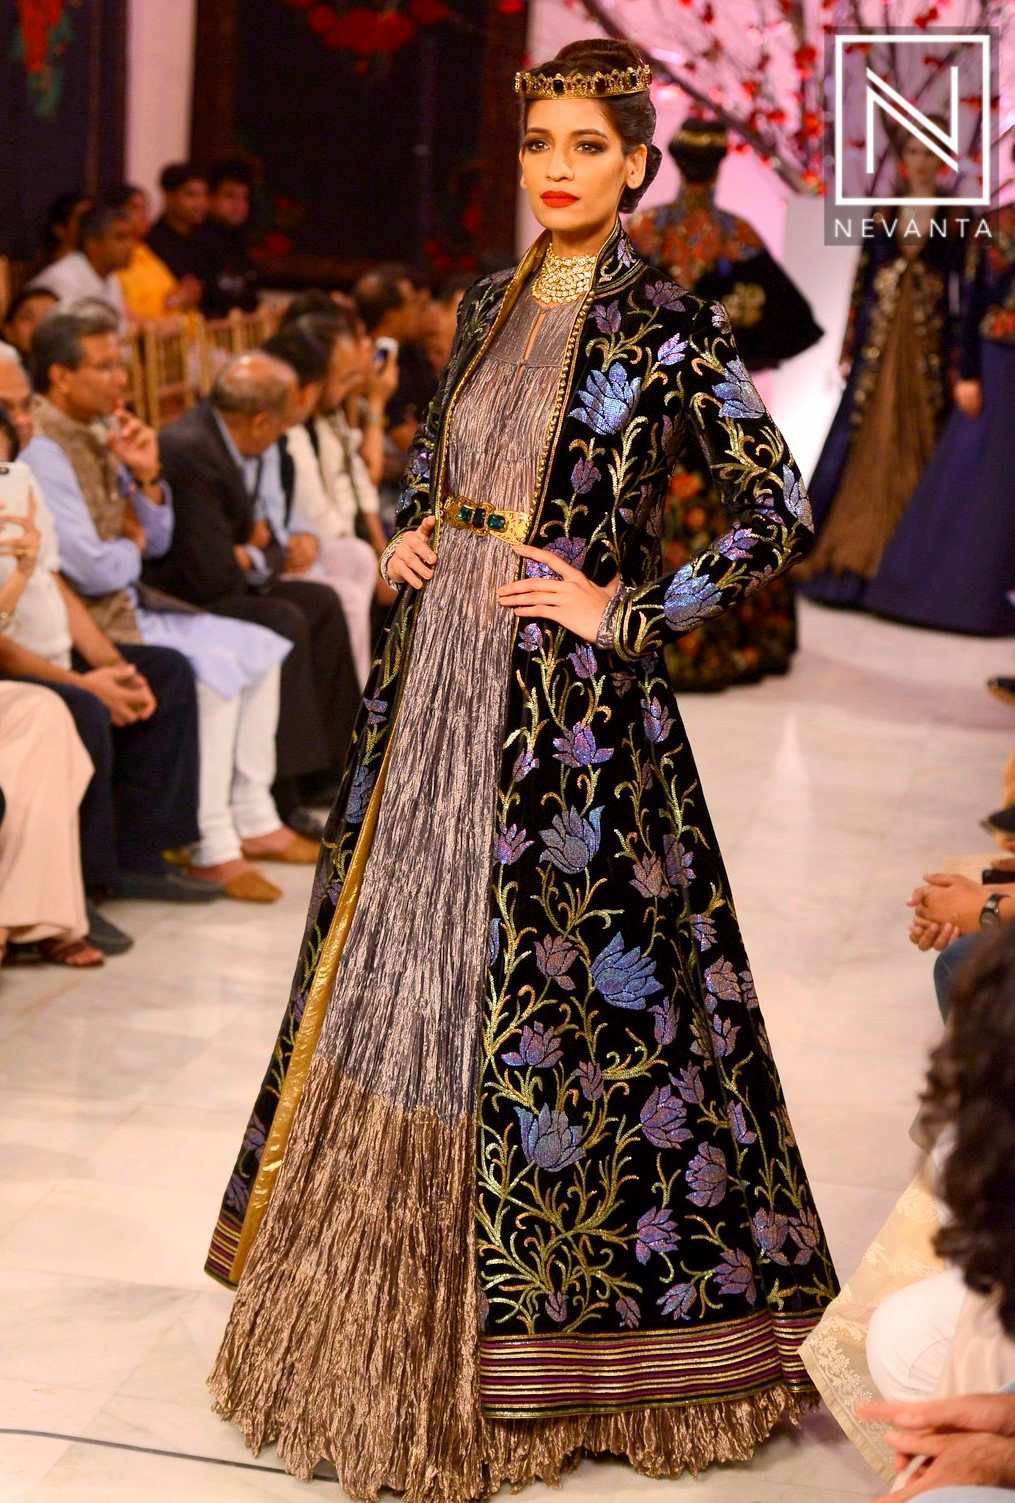 A Floral Embroidered Long Jacket Sported Over An Evening Gown By